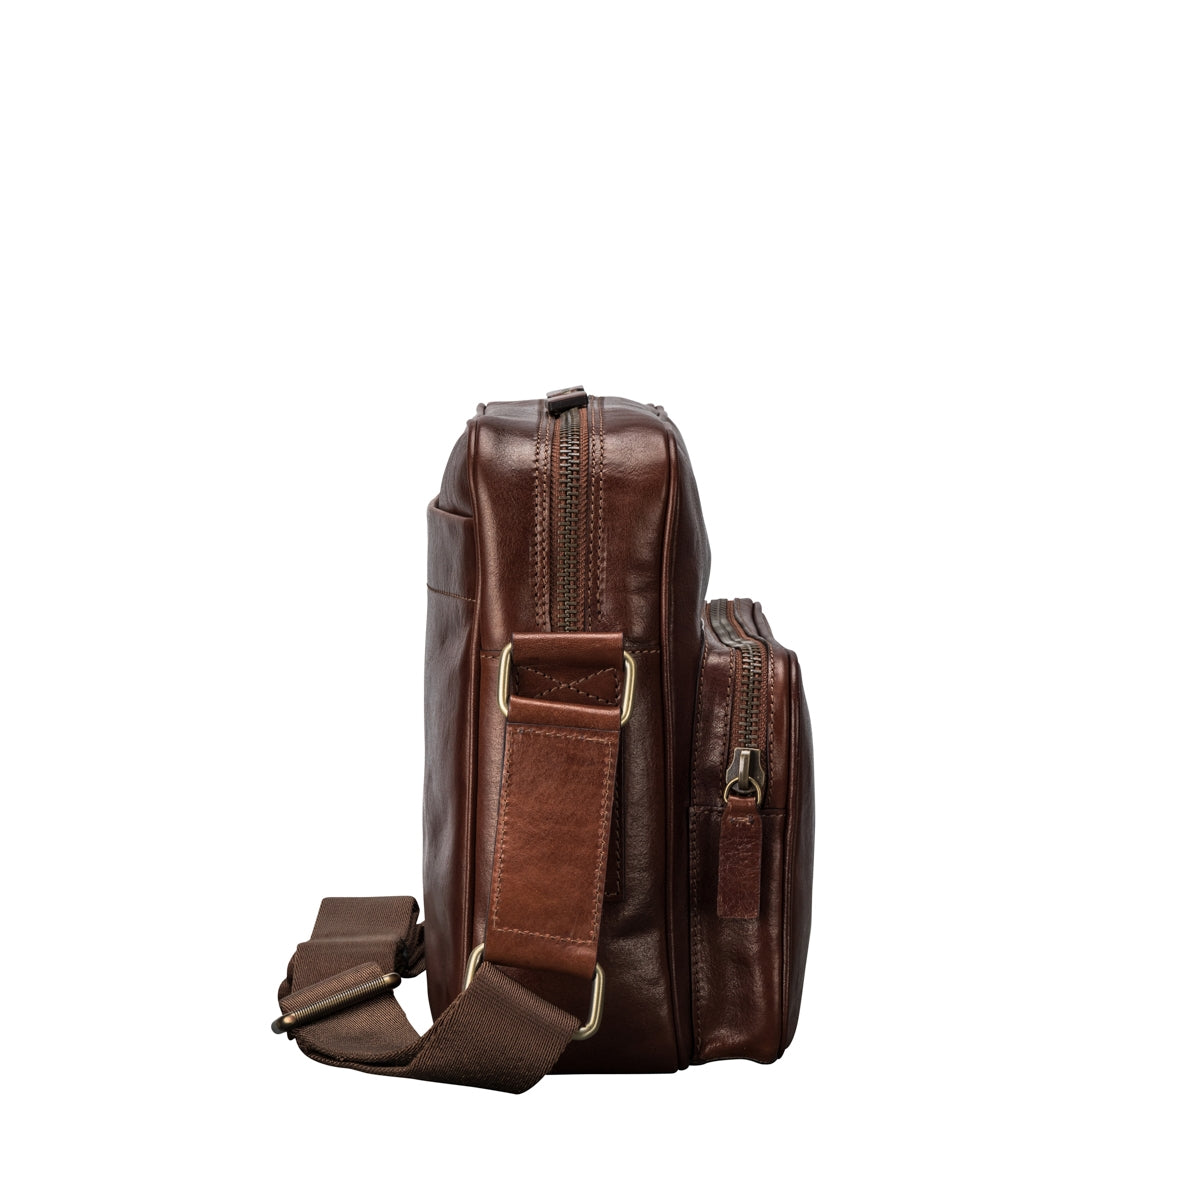 Image 3 of the Santino' Chestnut Handmade Veg-Tanned Leather Messenger Bag With Lock